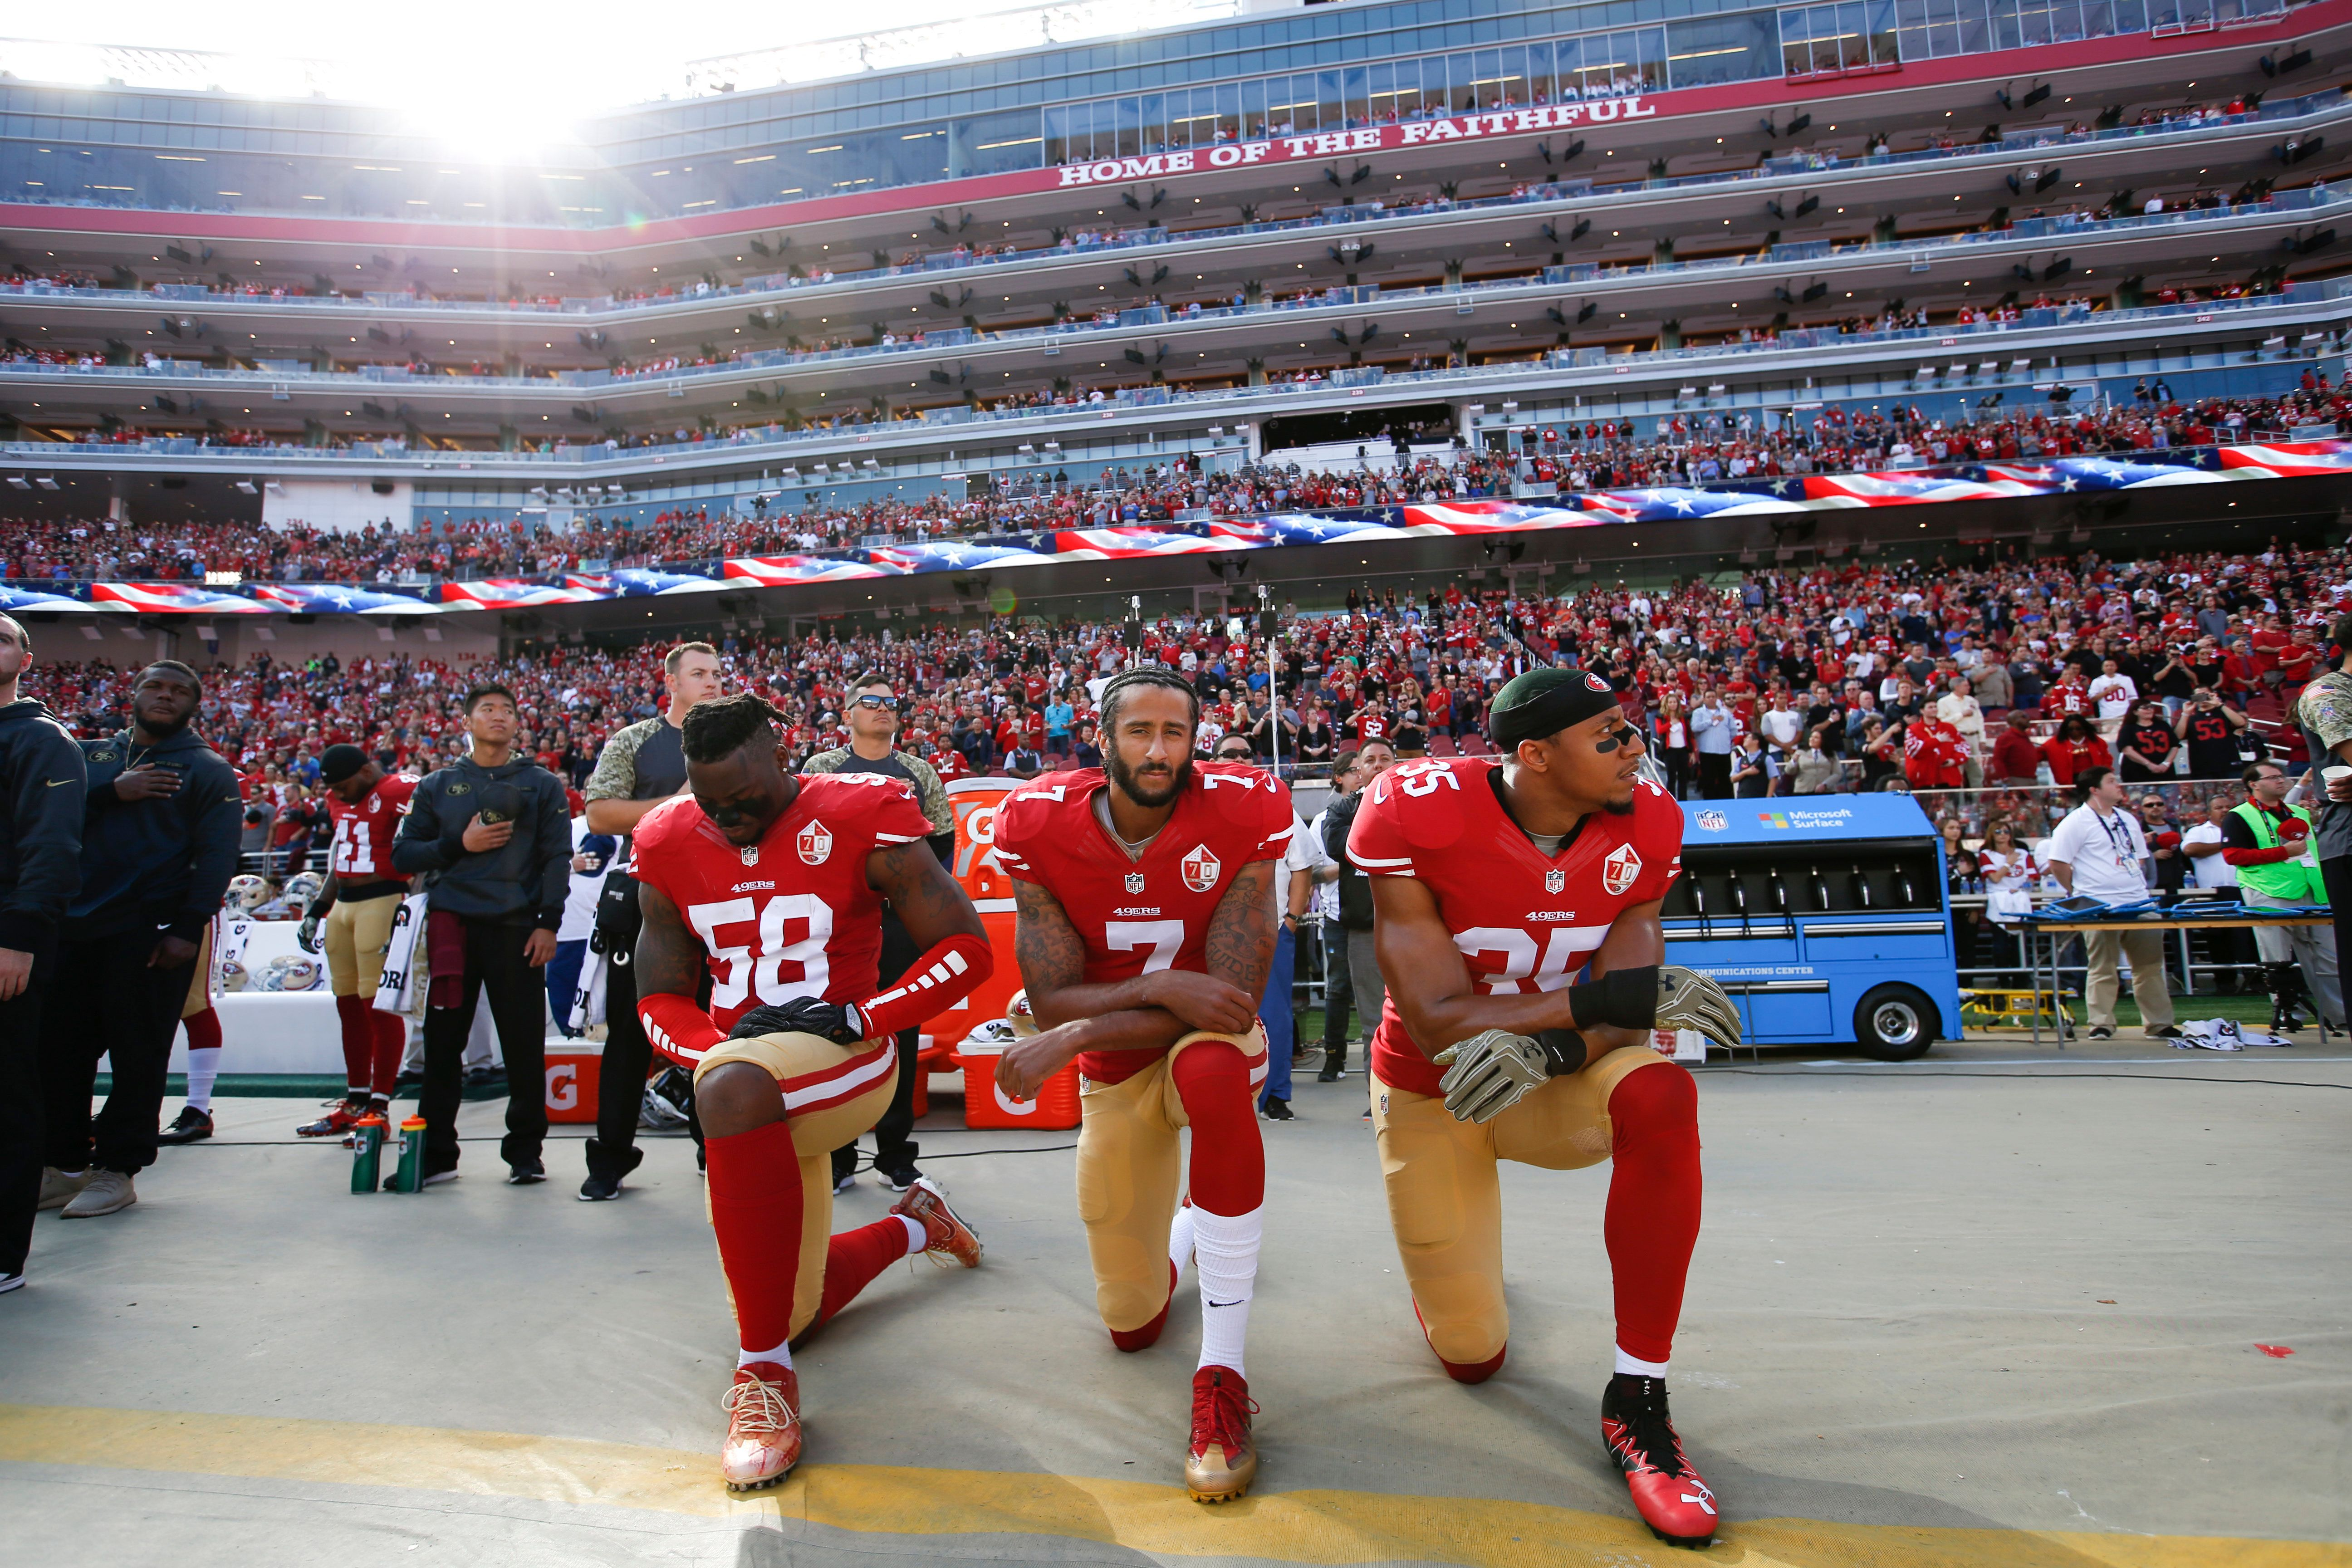 SANTA CLARA, CA - NOVEMBER 6: Eli Harold #58, Colin Kaepernick #7 and Eric Reid #35  of the San Francisco 49ers kneel on the sideline during the anthem prior to the game against the New Orleans Saints at Levi Stadium on November 6, 2016 in Santa Clara, California. The Saints defeated the 49ers 41-23. (Photo by Michael Zagaris/San Francisco 49ers/Getty Images)